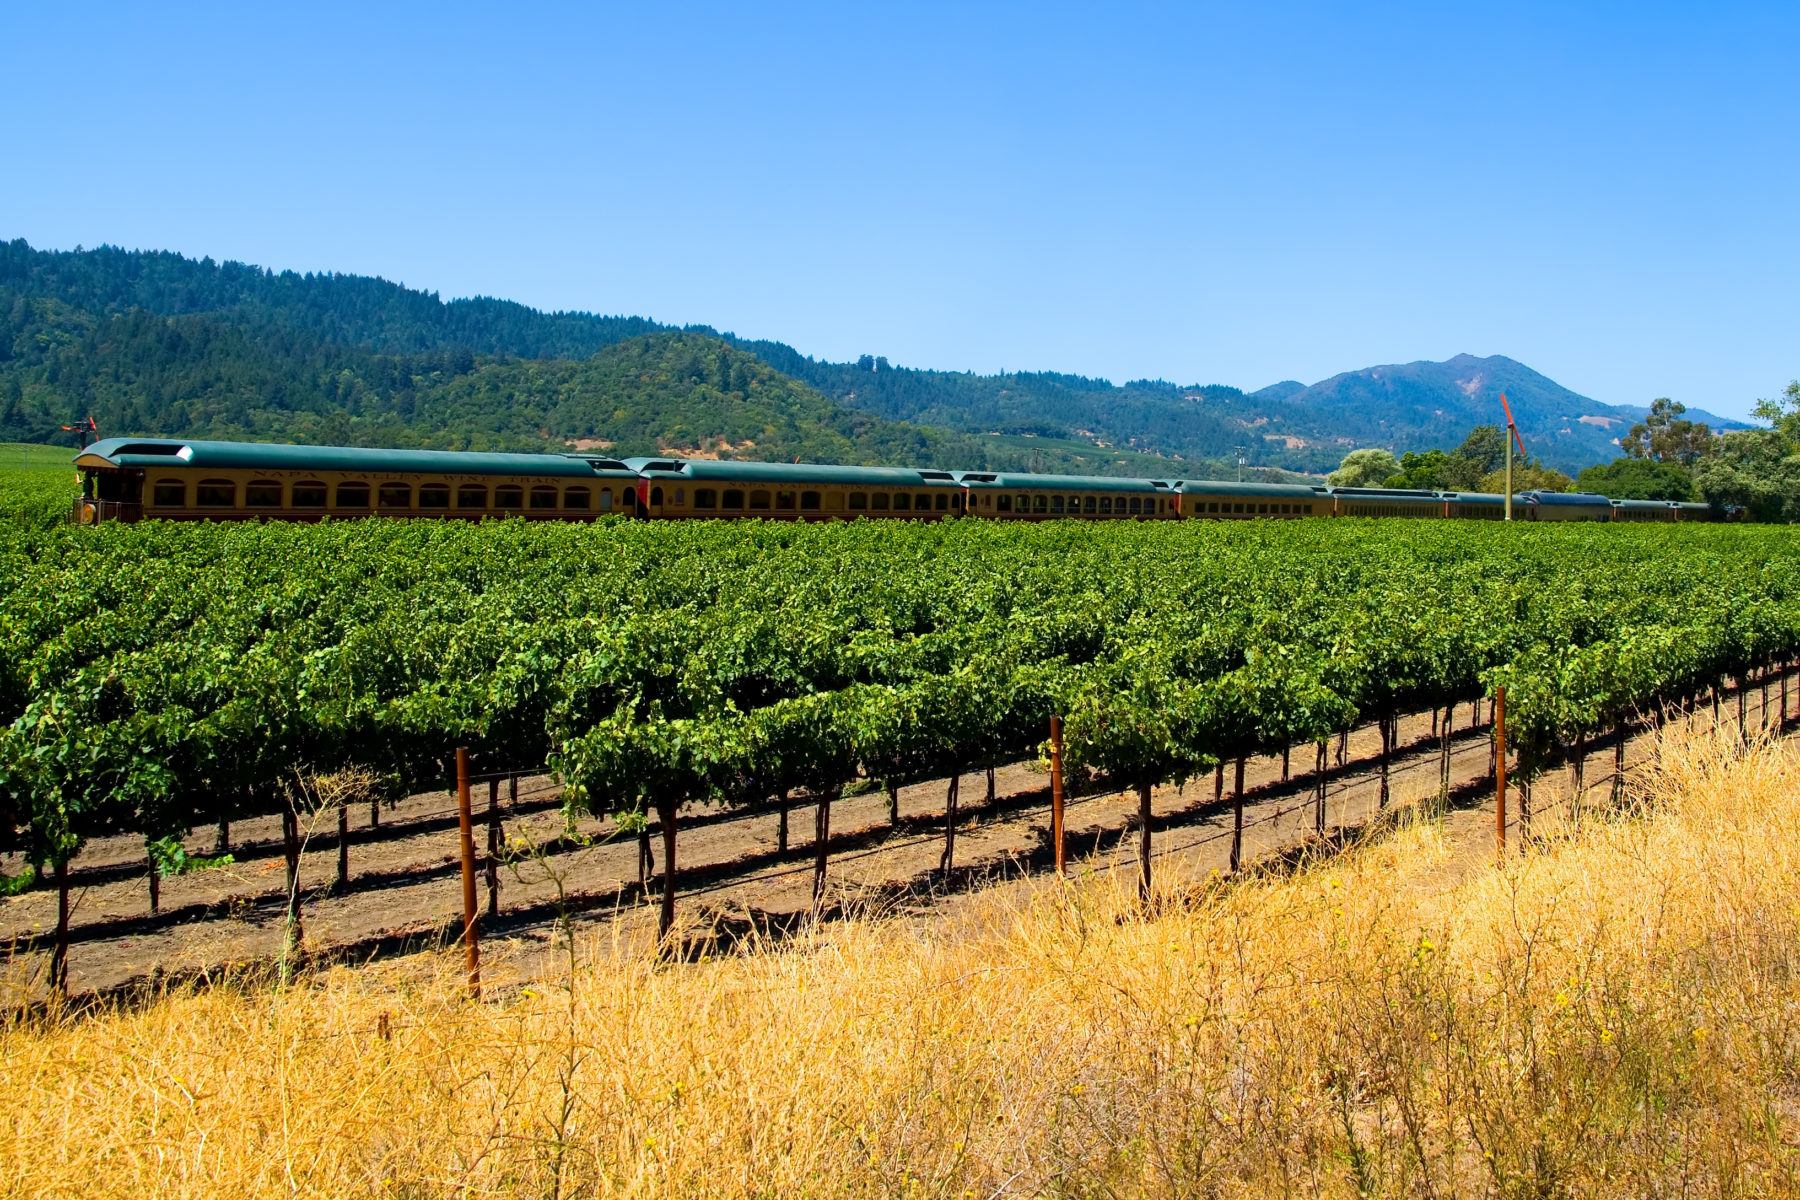 Napa Valley Wine Train cruising through lush vineyards